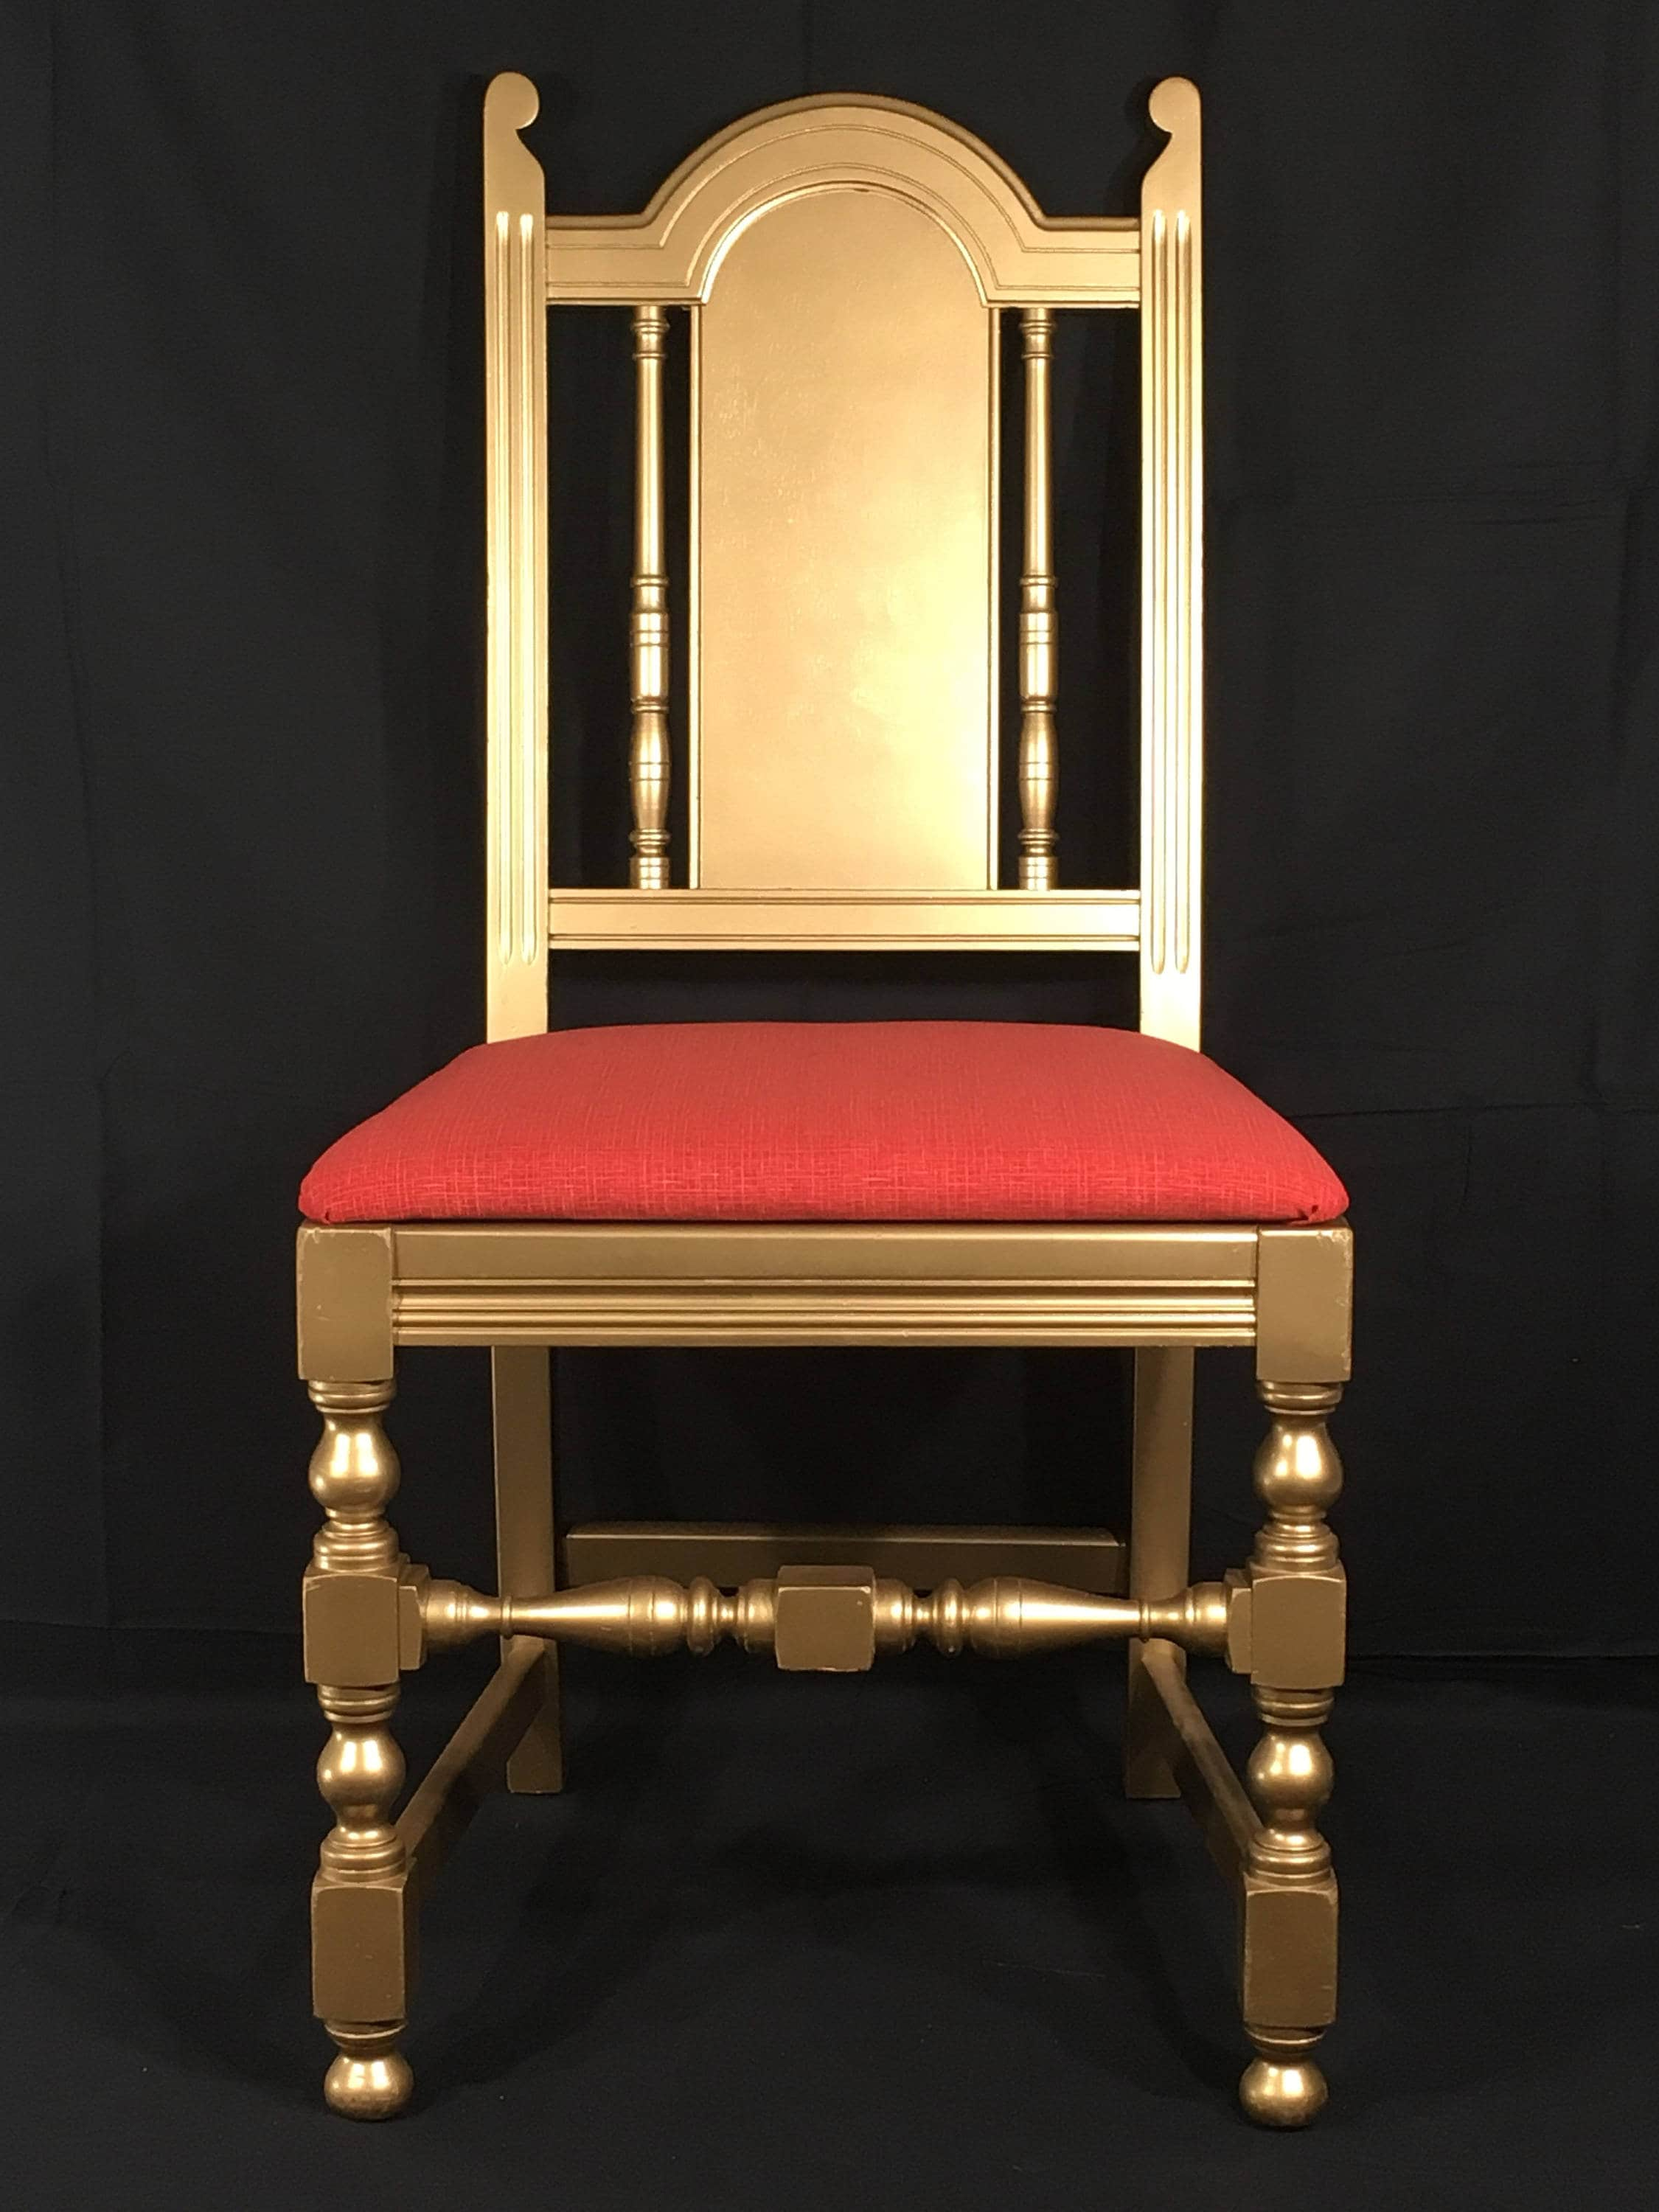 Antique William Amp Mary Chairs 2 Gold And Red Decorative